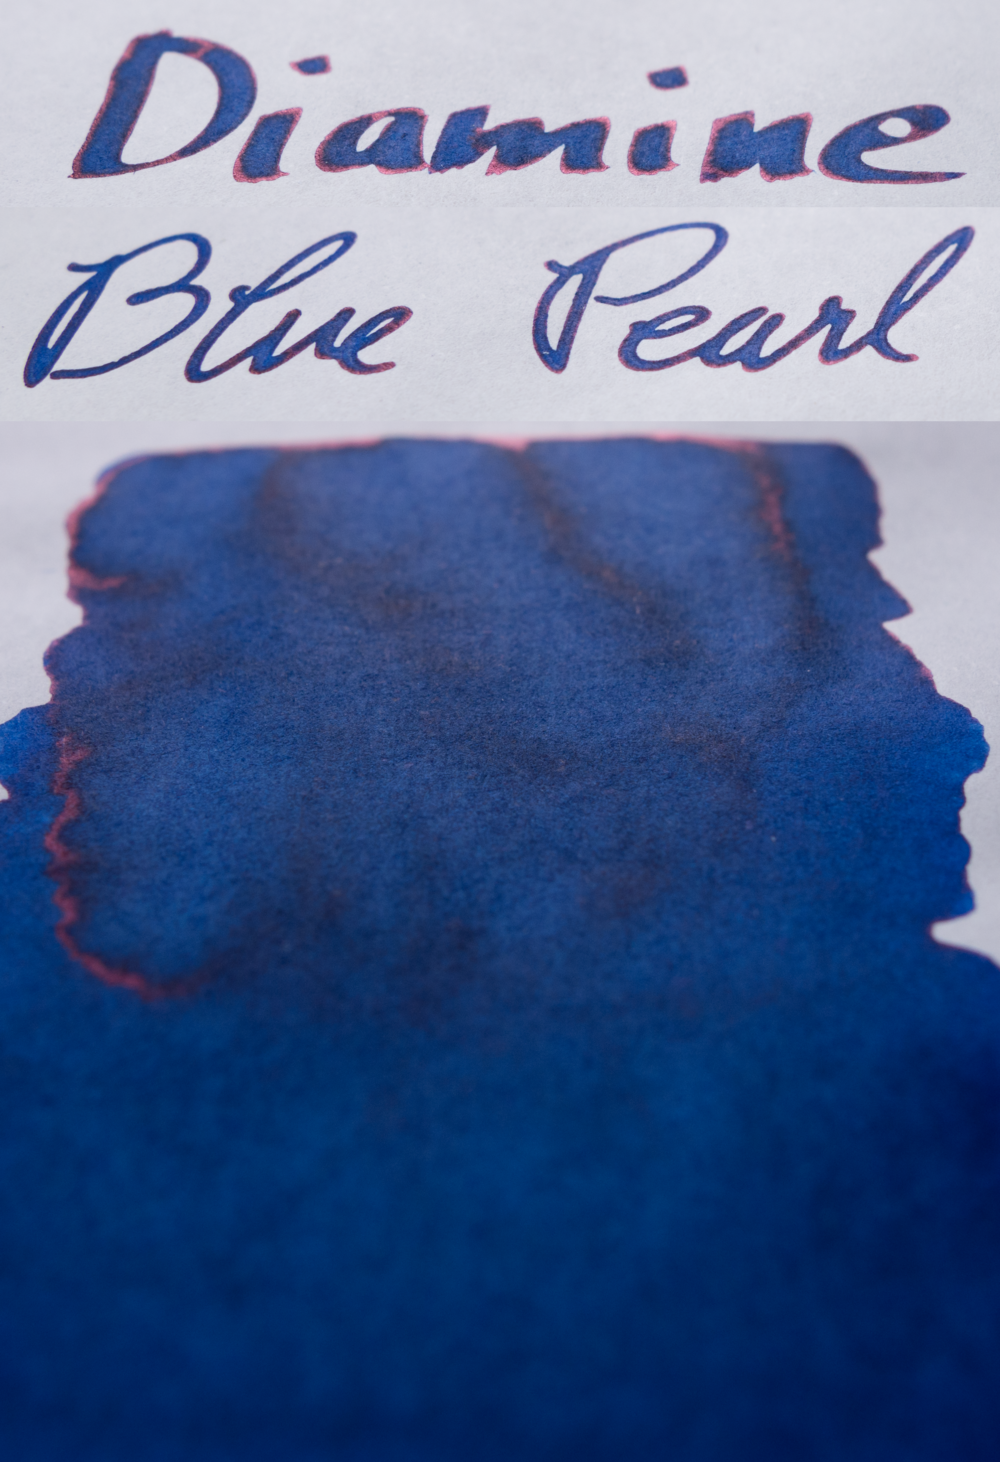 Diamine Blue Pearl Sheen Card.jpg